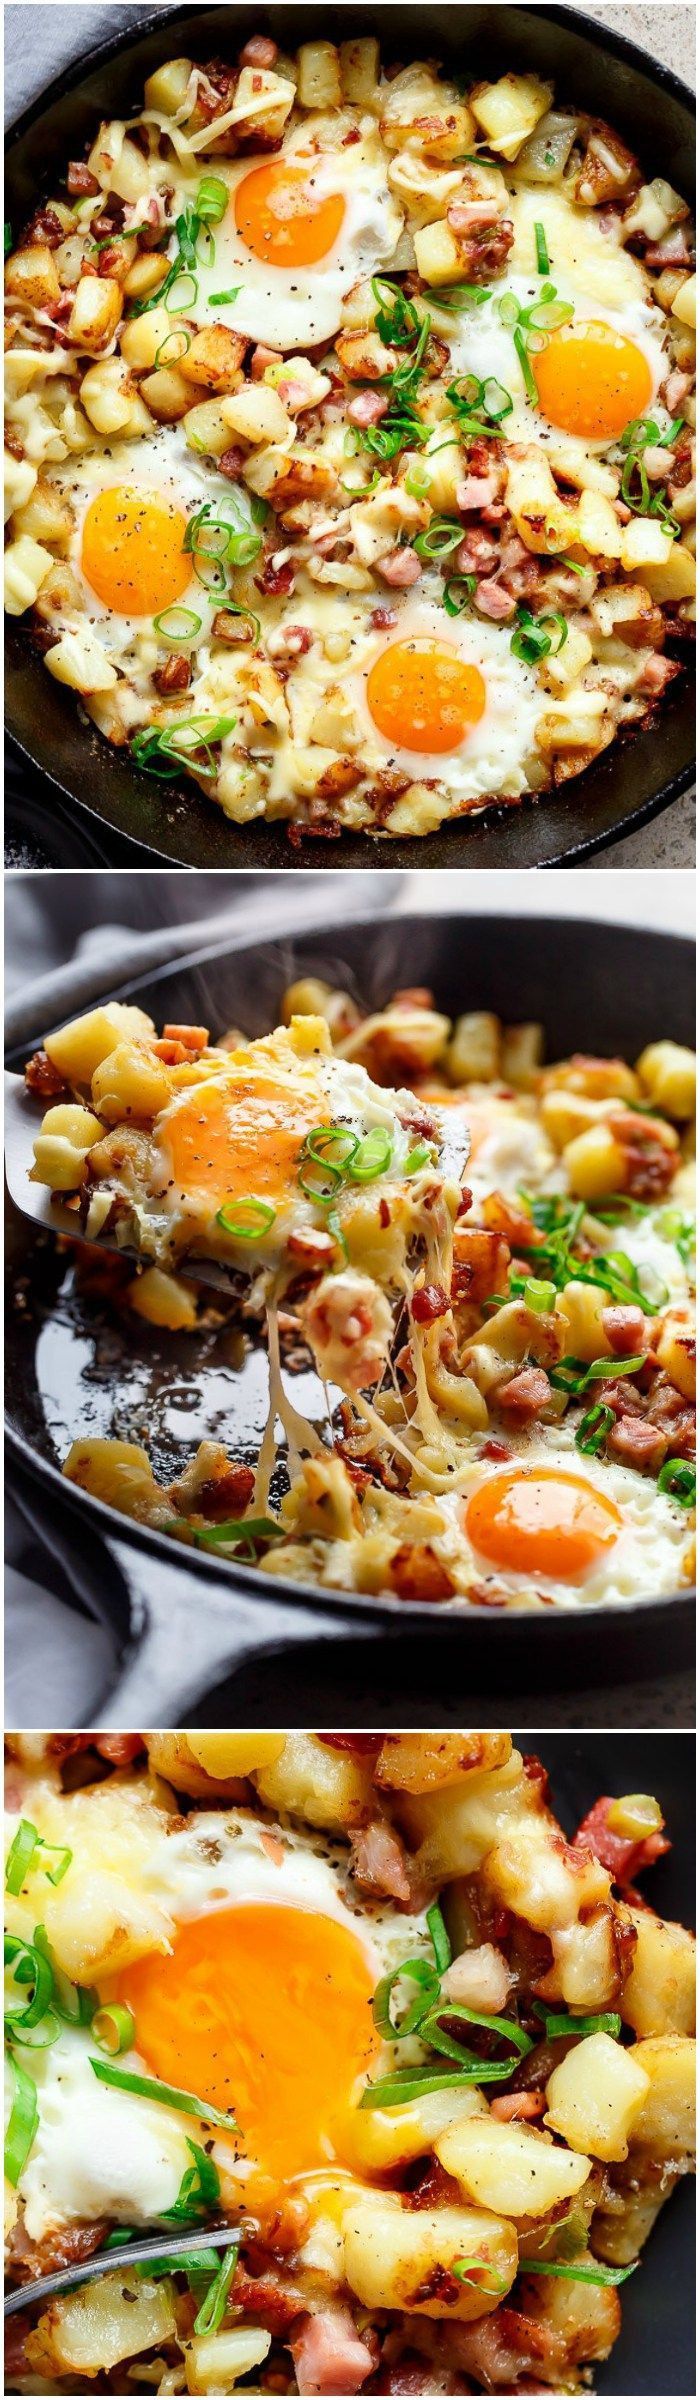 Cheesy Bacon and Egg Hash for breakfast brunch lunch or dinner! Easy to make and ready in 30 minutes!